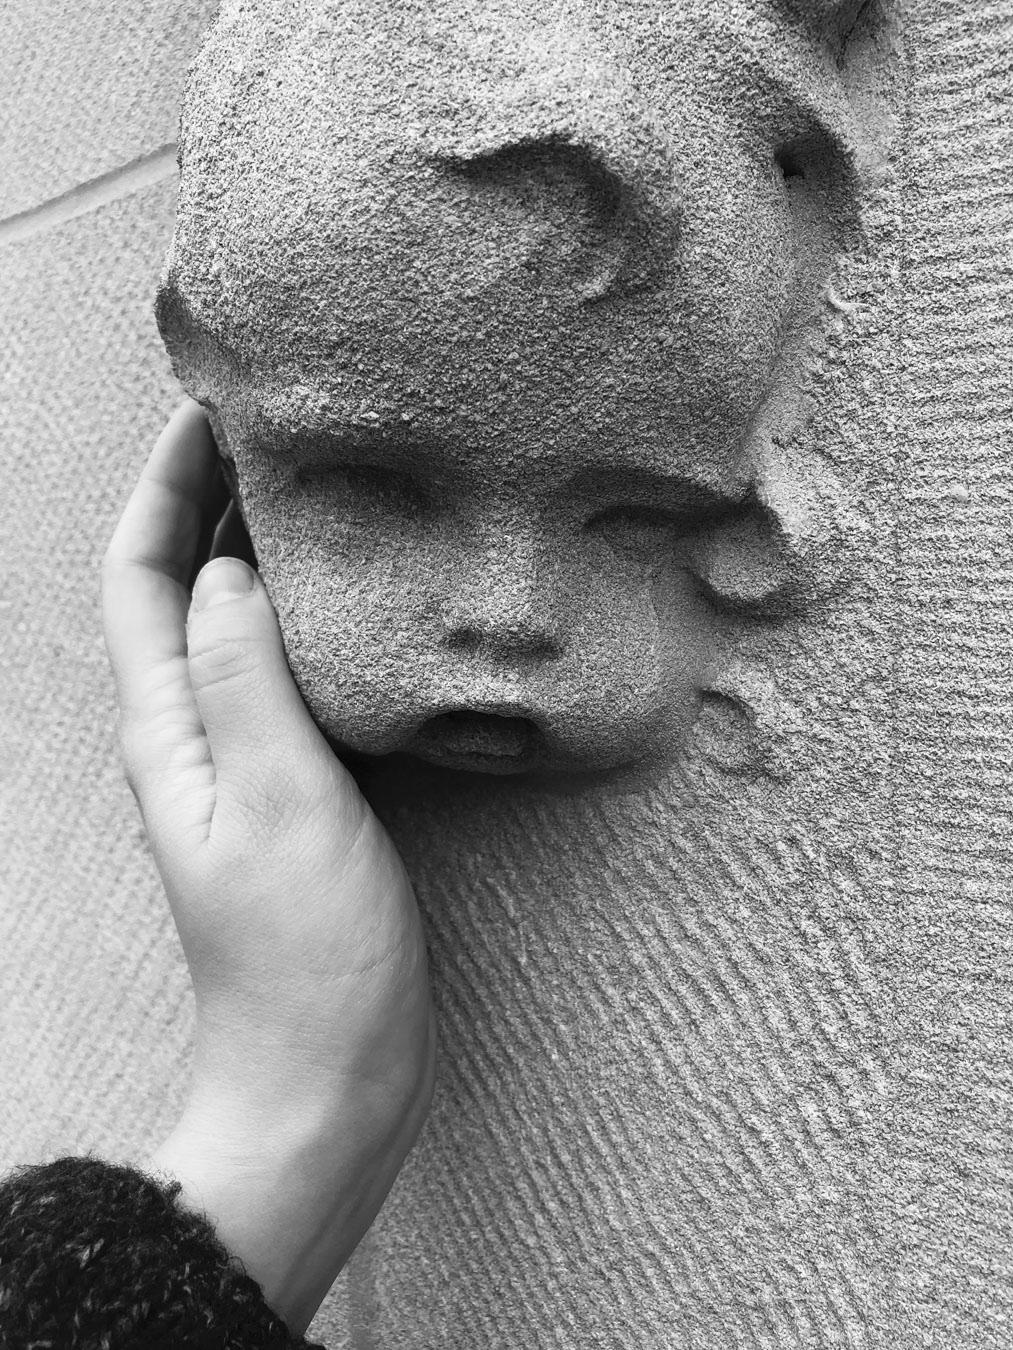 A black and white photograph of a white person's hand reaching out to touch a cherubic face made of stone.